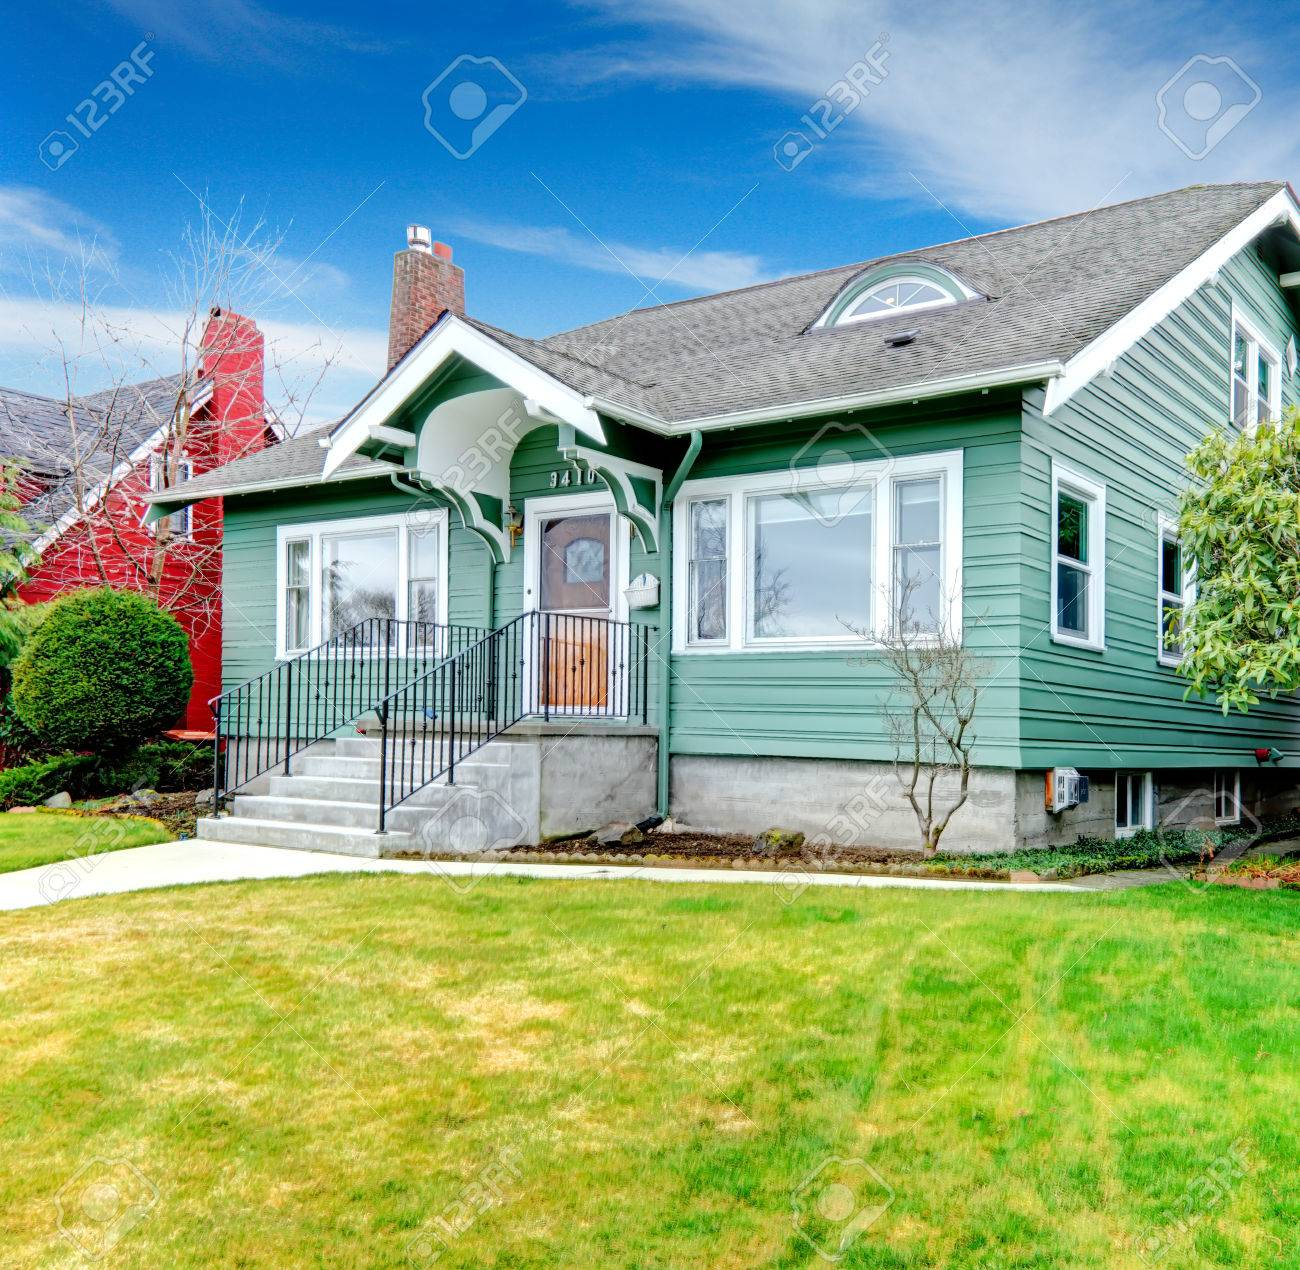 Green Small House With Tile Roof Porch With Stairs Stock Photo Picture And Royalty Free Image Image 28636220